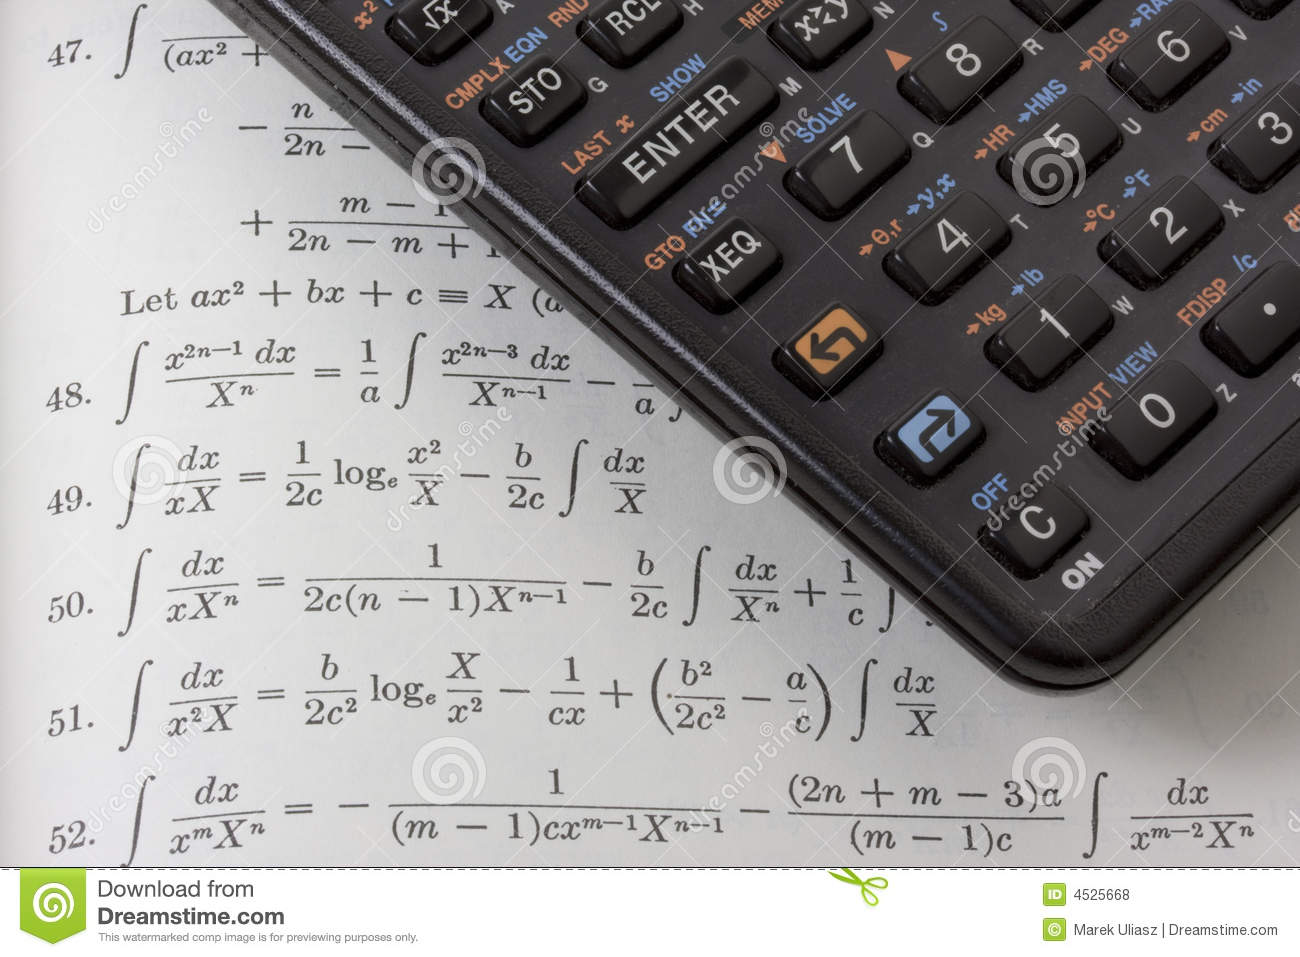 No Credit Check Credit Cards >> Scientific Calculator On Math Textbook Royalty Free Stock ...